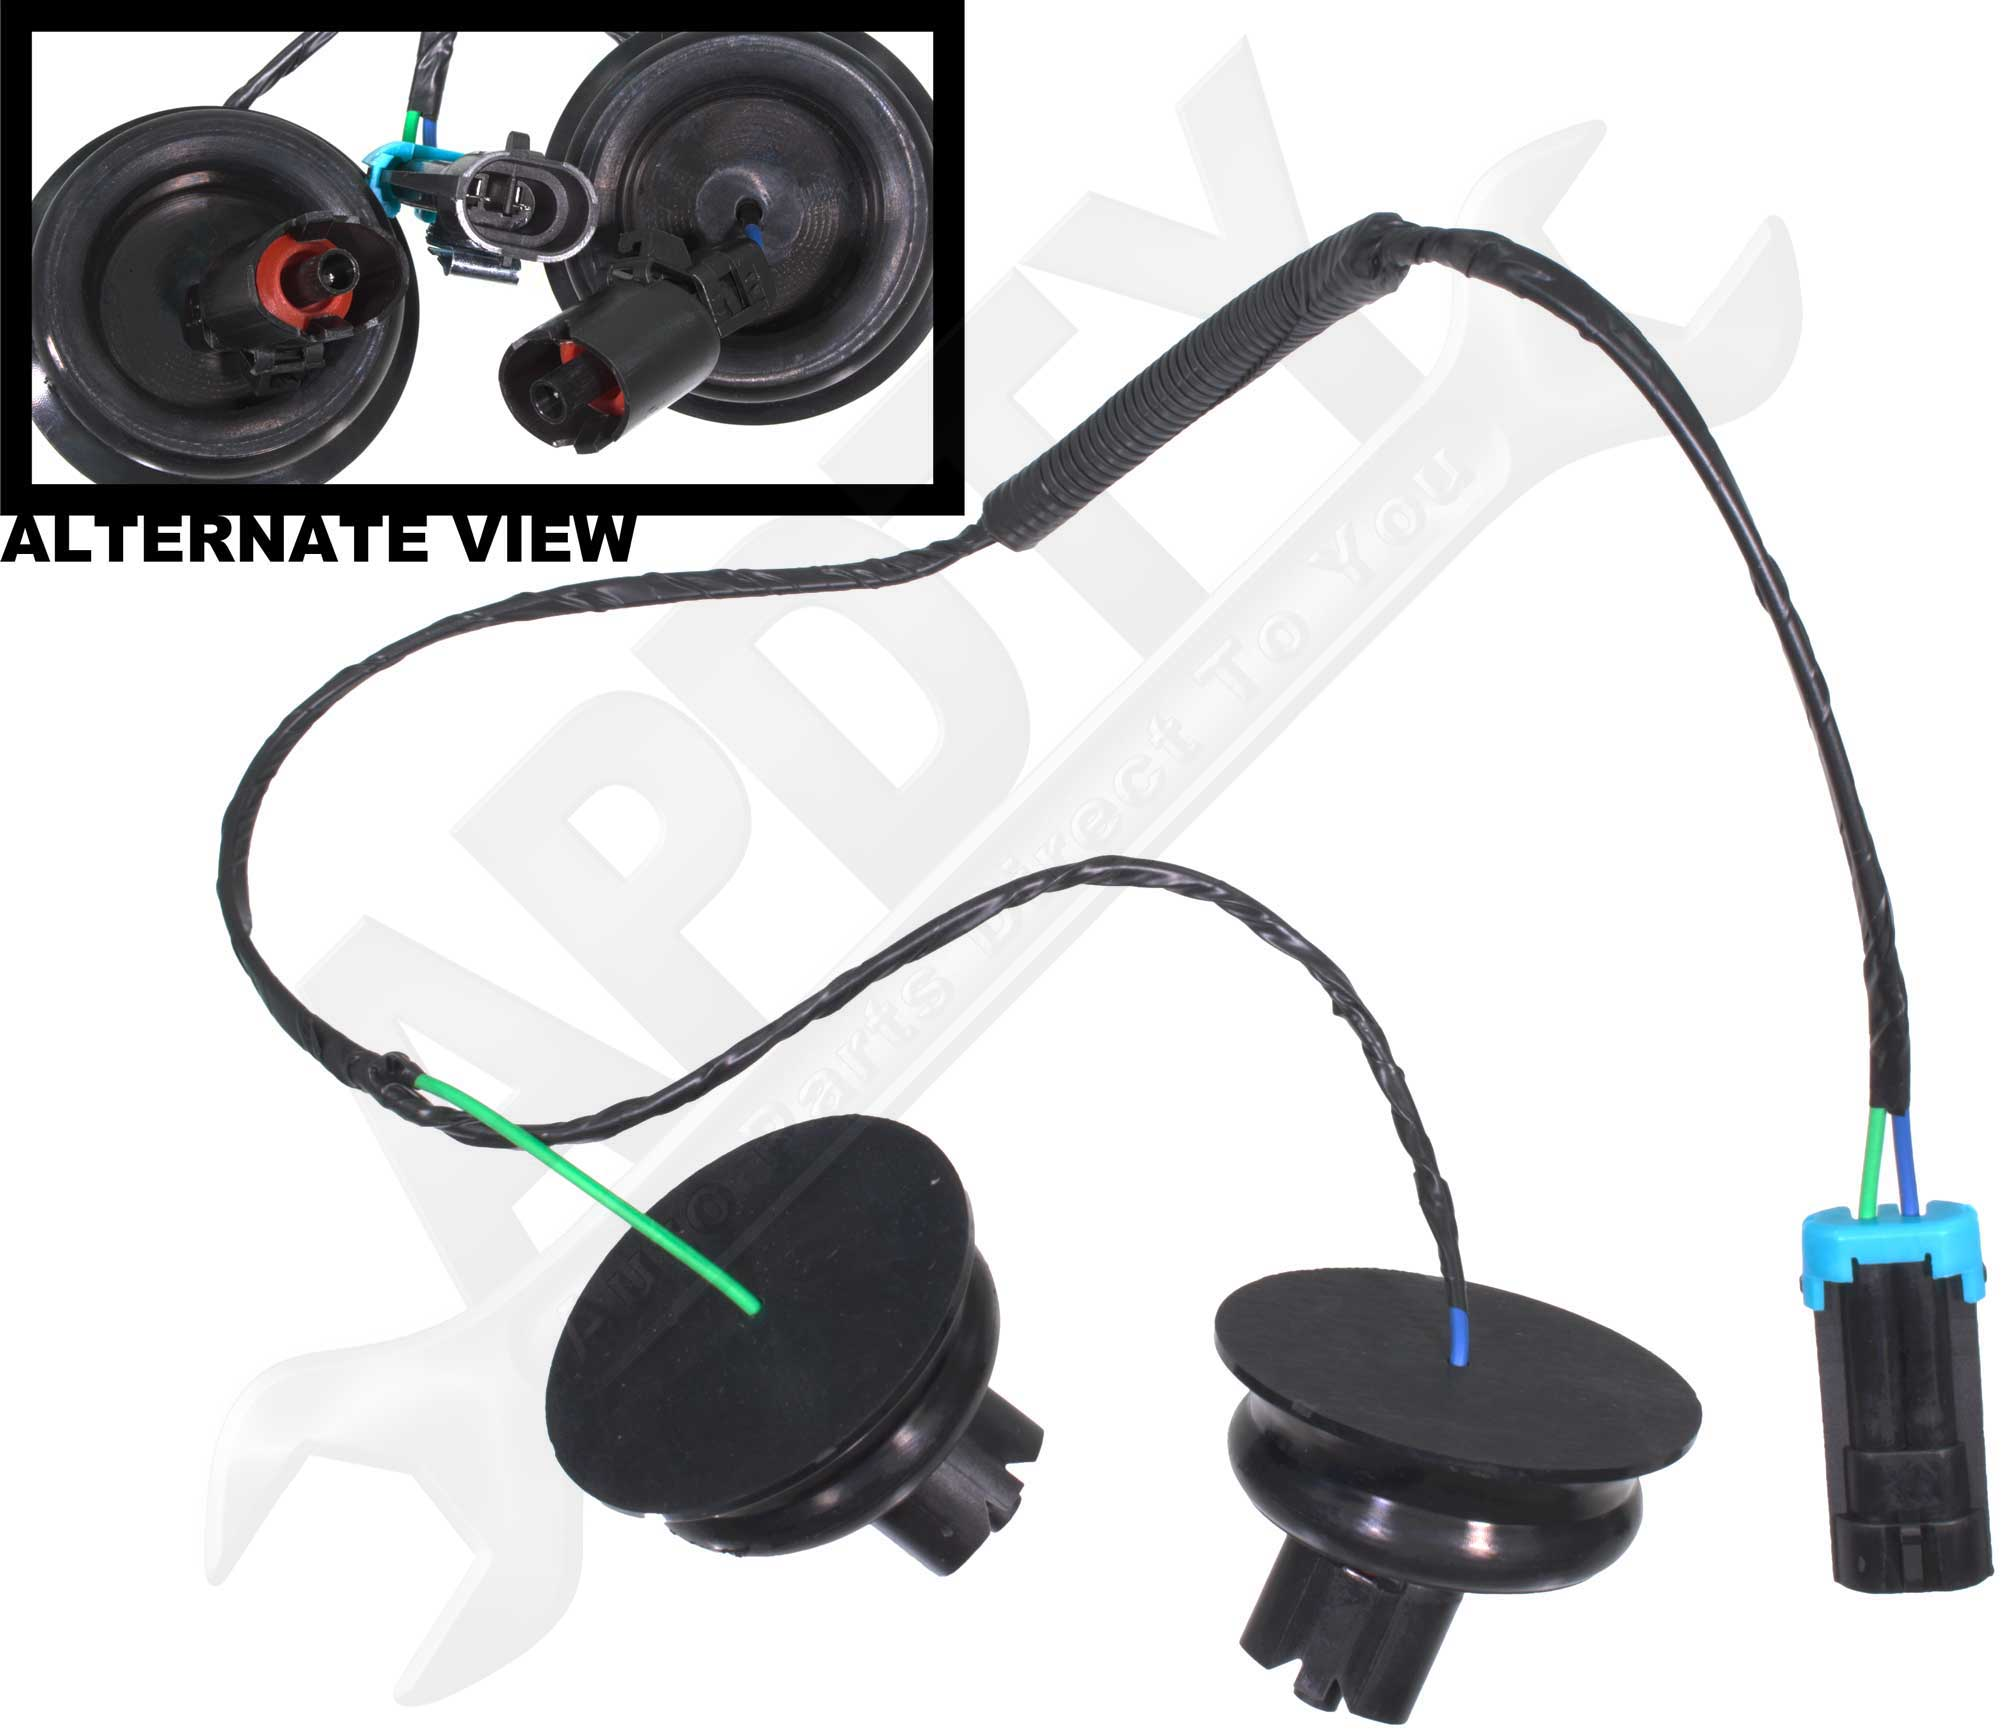 apdty 028144 knock sensor wire harness dual connector kit ... gm knock sensor wiring diagram gm knock sensor wire harness